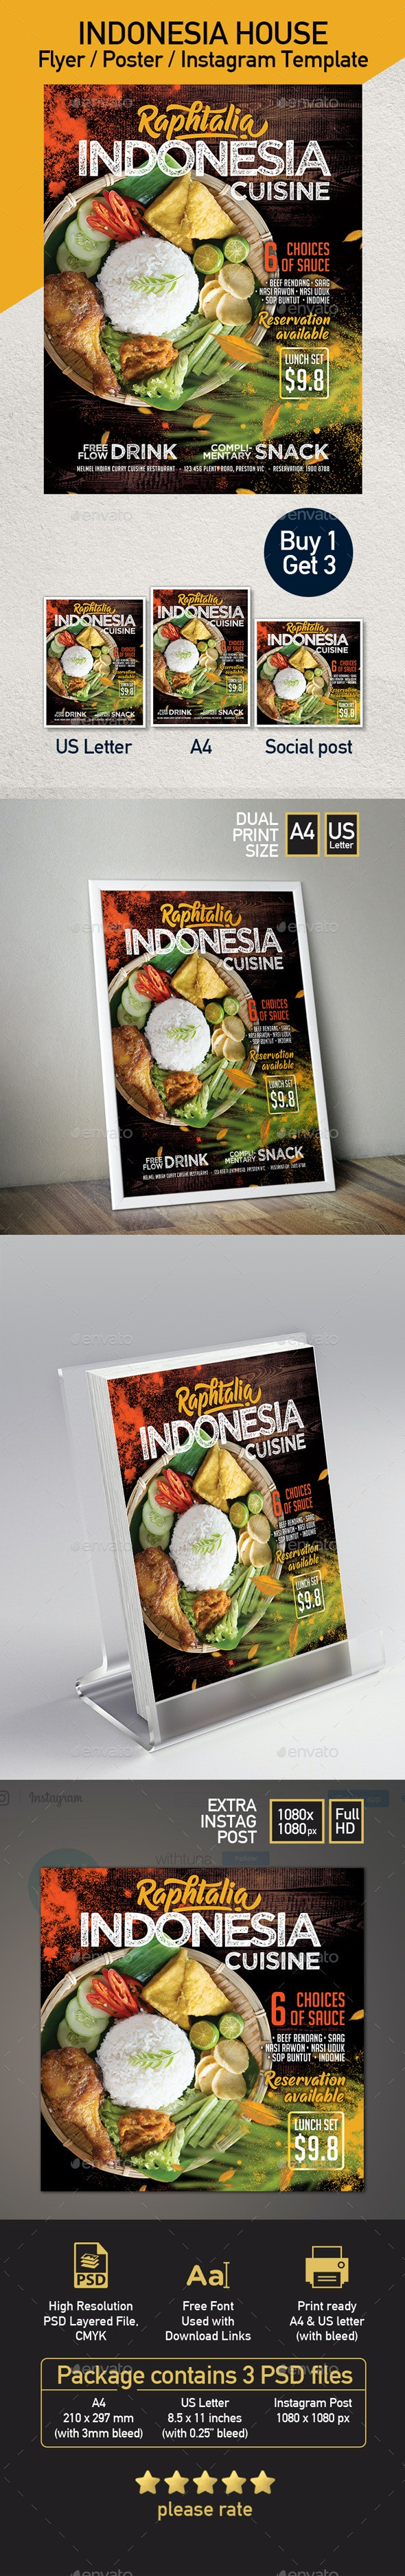 Indonesia Cuisine Restaurant Promotion Flyer or Poster Template - Set of 3 Templates - Restaurant Flyers